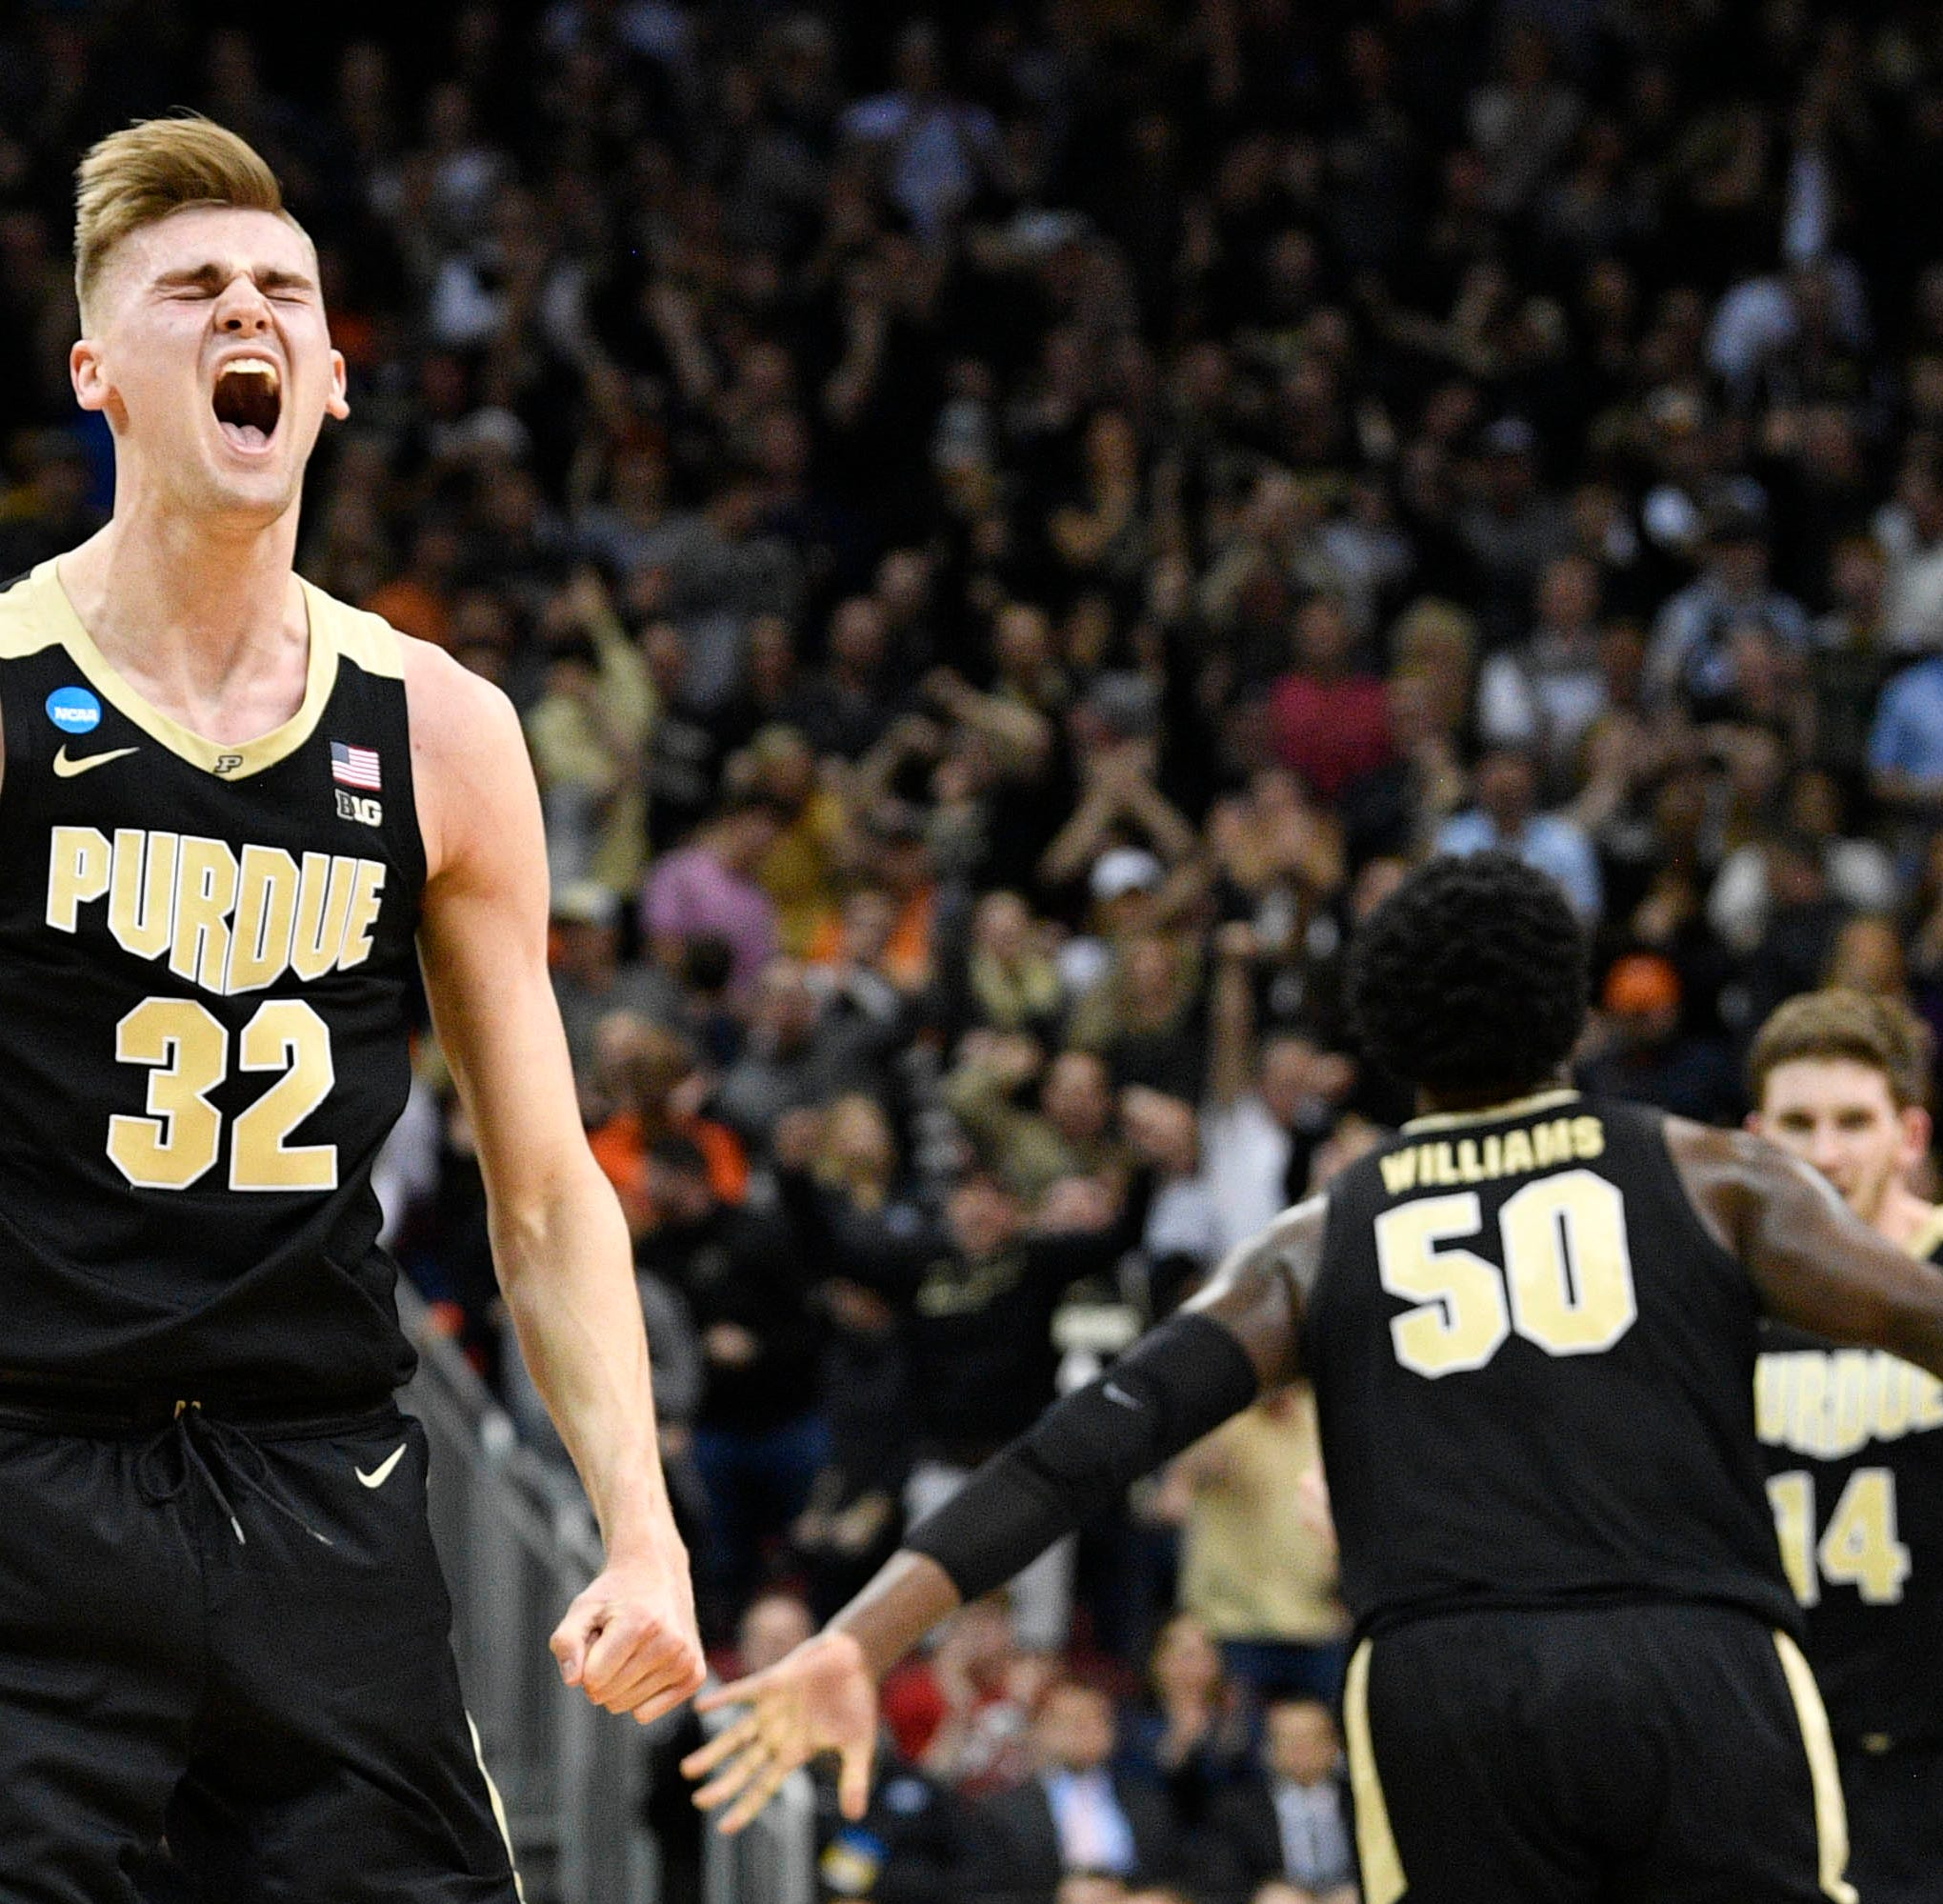 Purdue basketball's dual big man lineup nearly turned the tables on Virginia